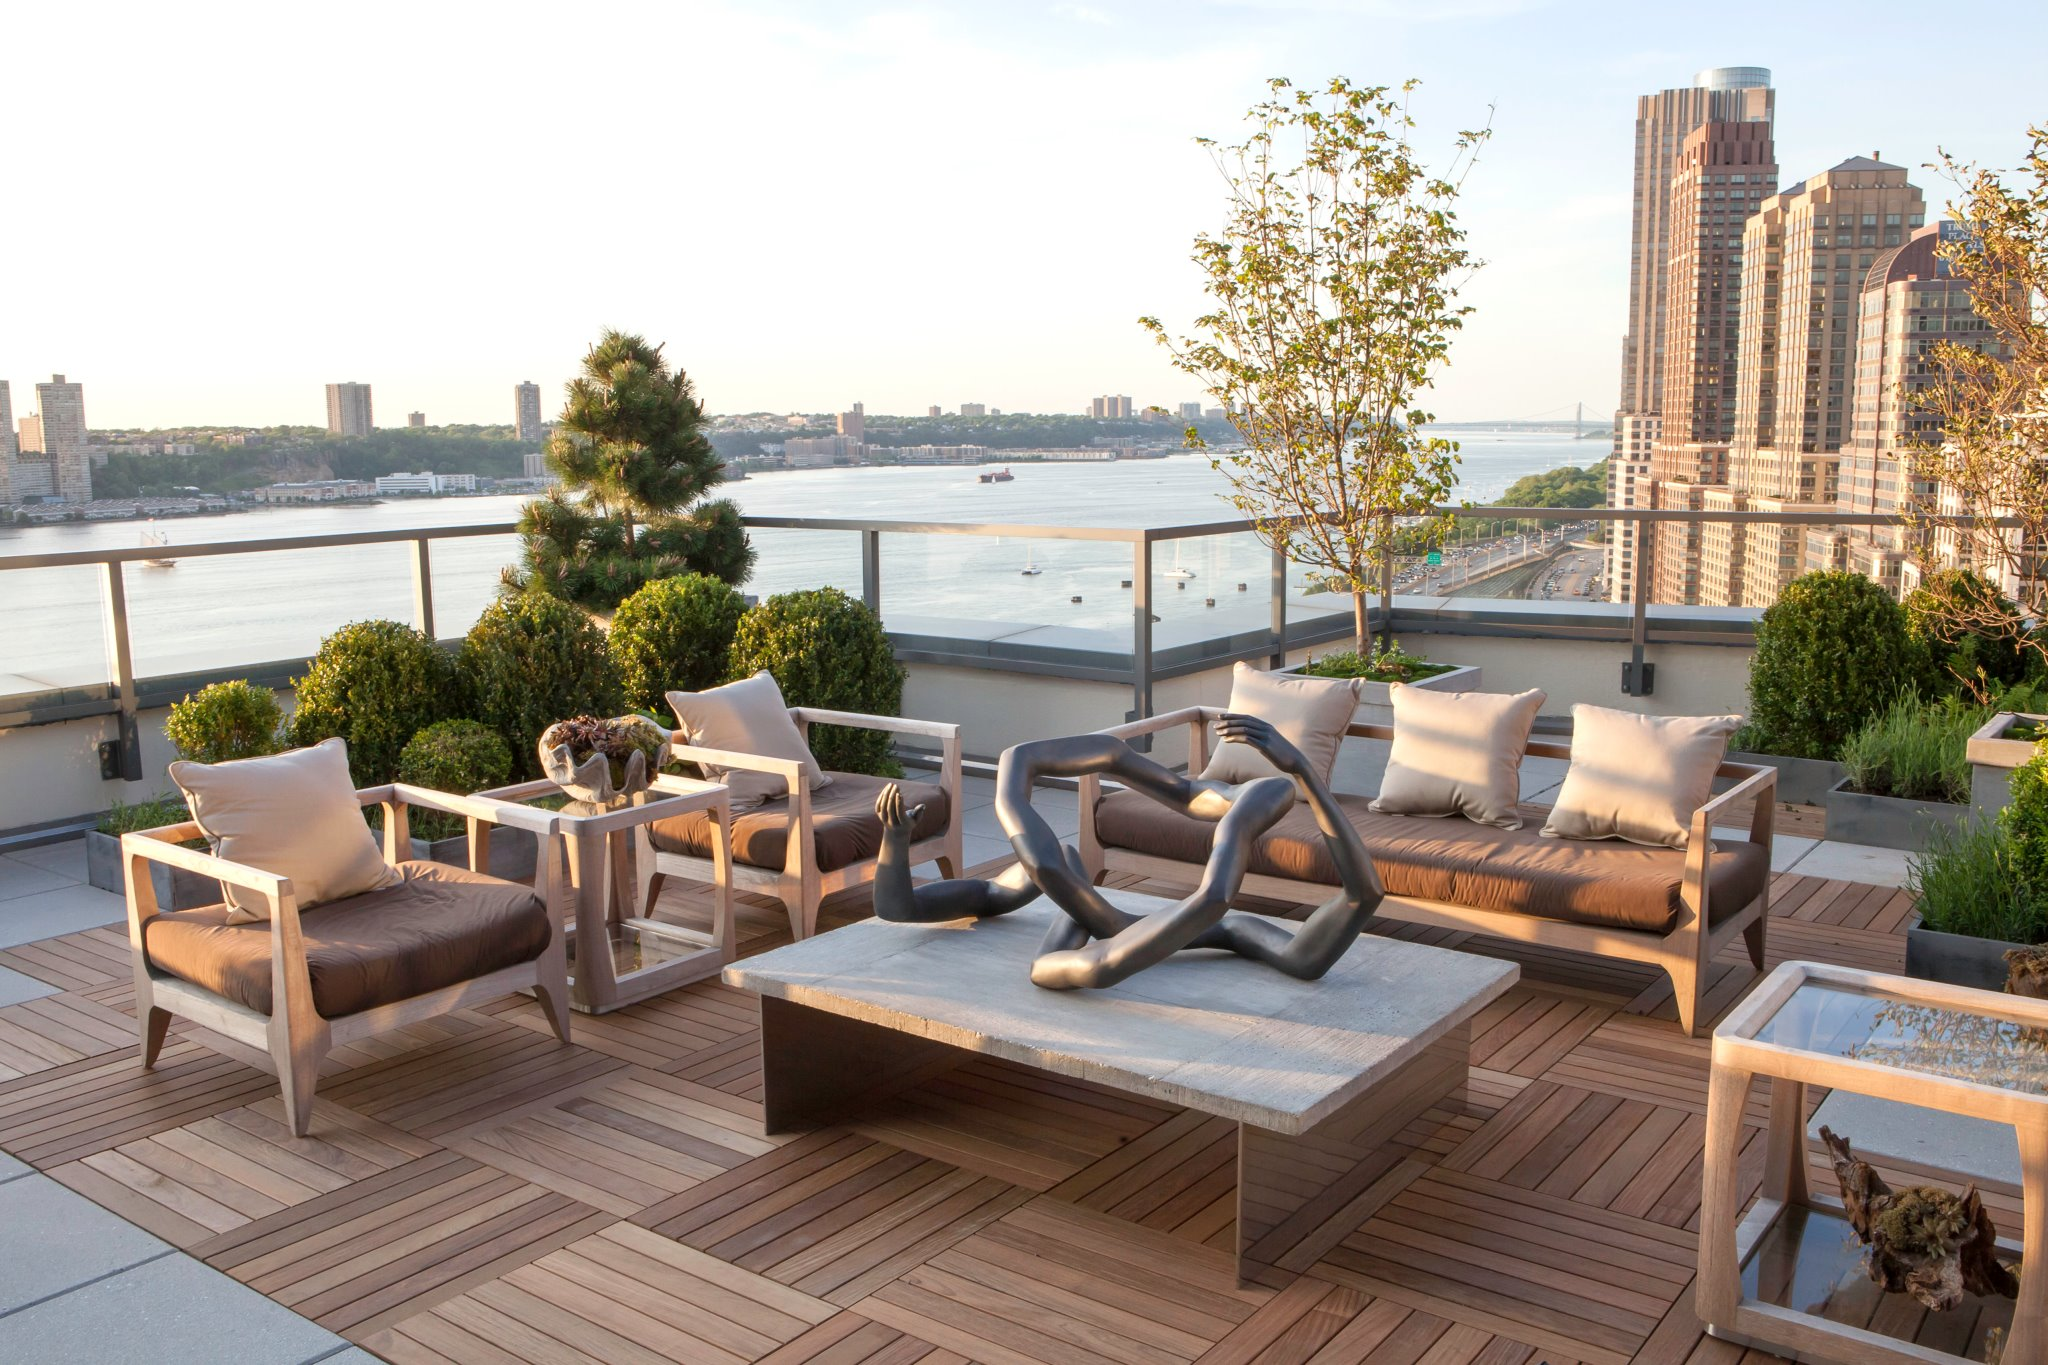 Rooftop deck design ideas roof deck design ideas roof deck romantichomedesign com 02 pm full size is 2048 1365 pixels baanklon Image collections